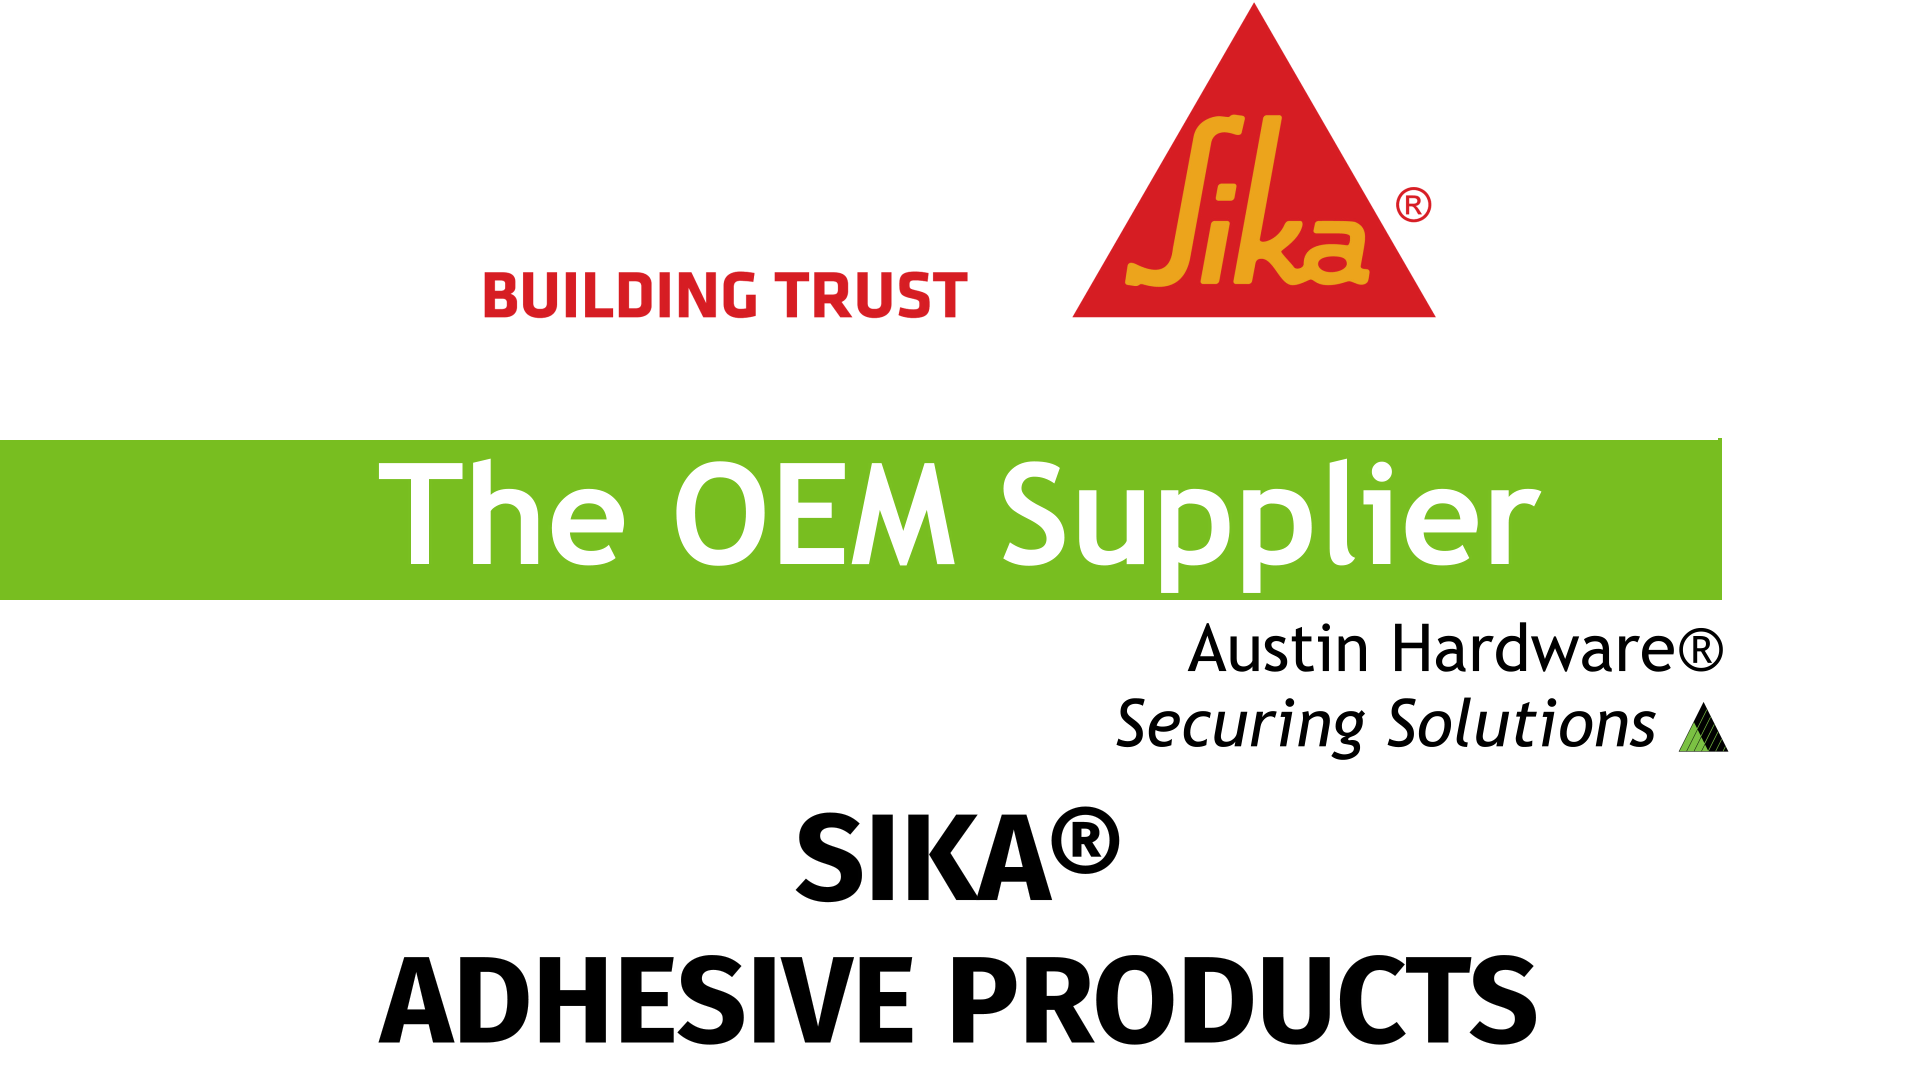 Austin Hardware® and Sika® - The OEM Supplier